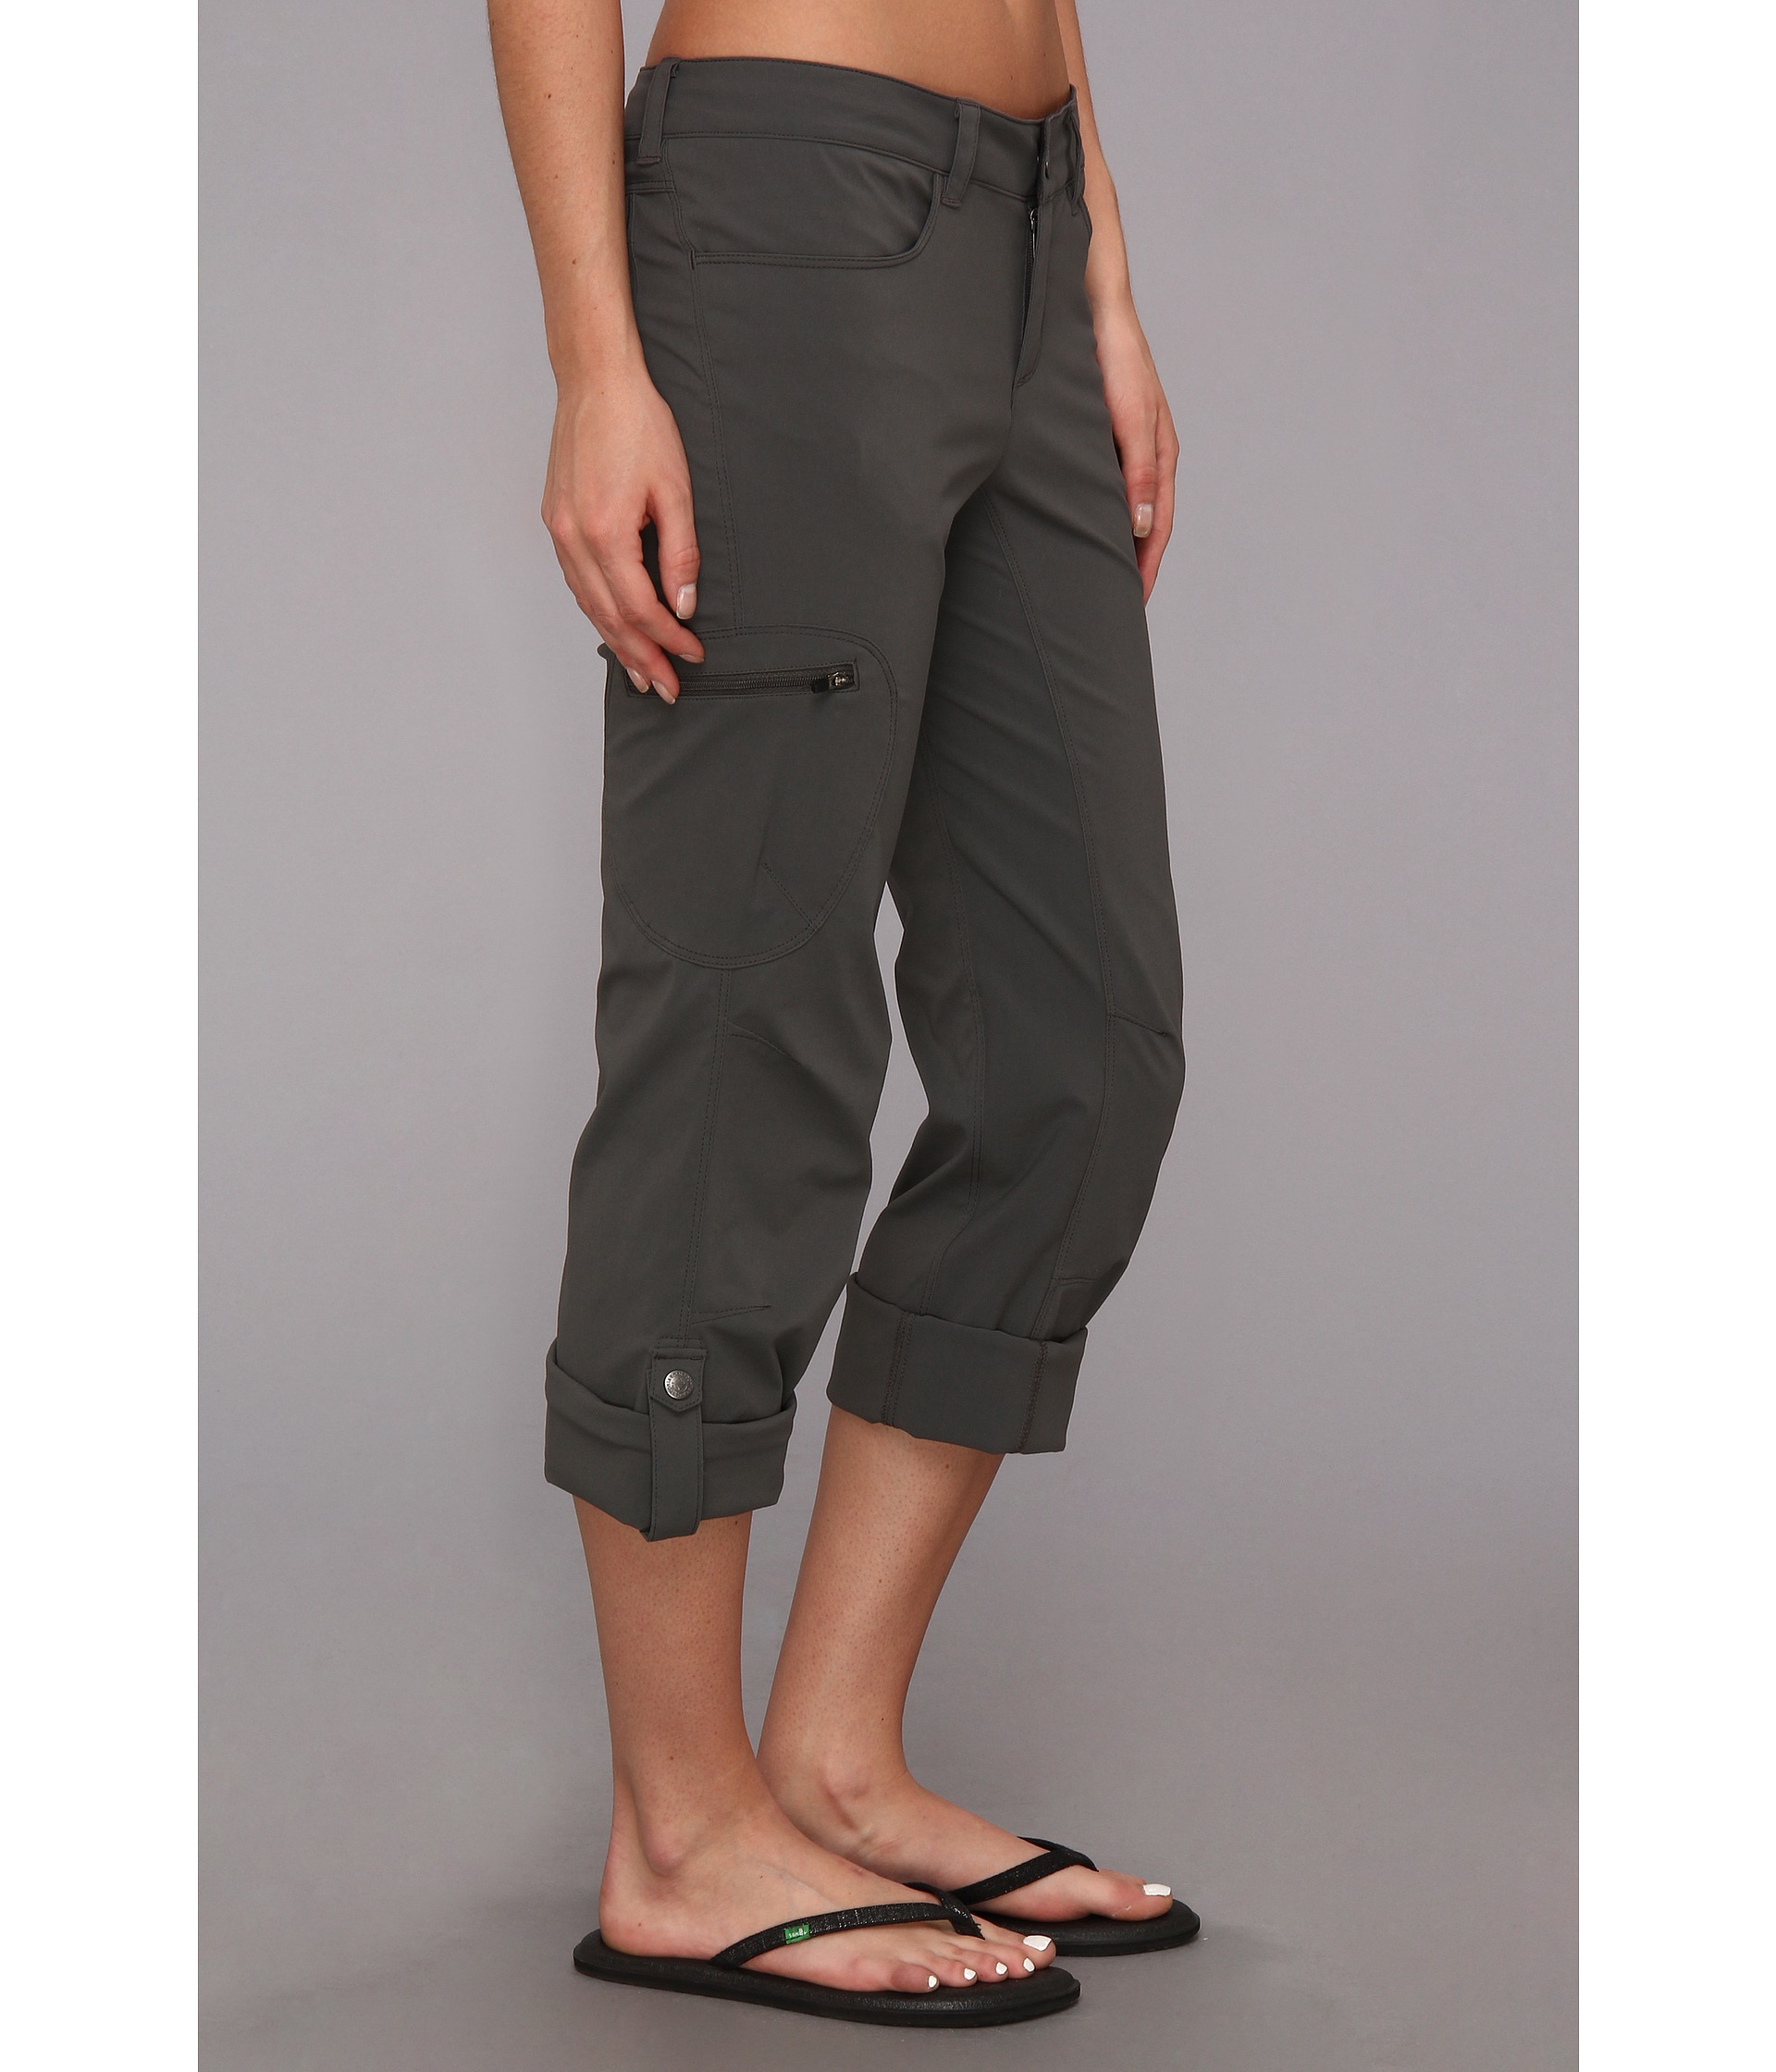 patagonia rock craft pants clothing shipped free at zappos